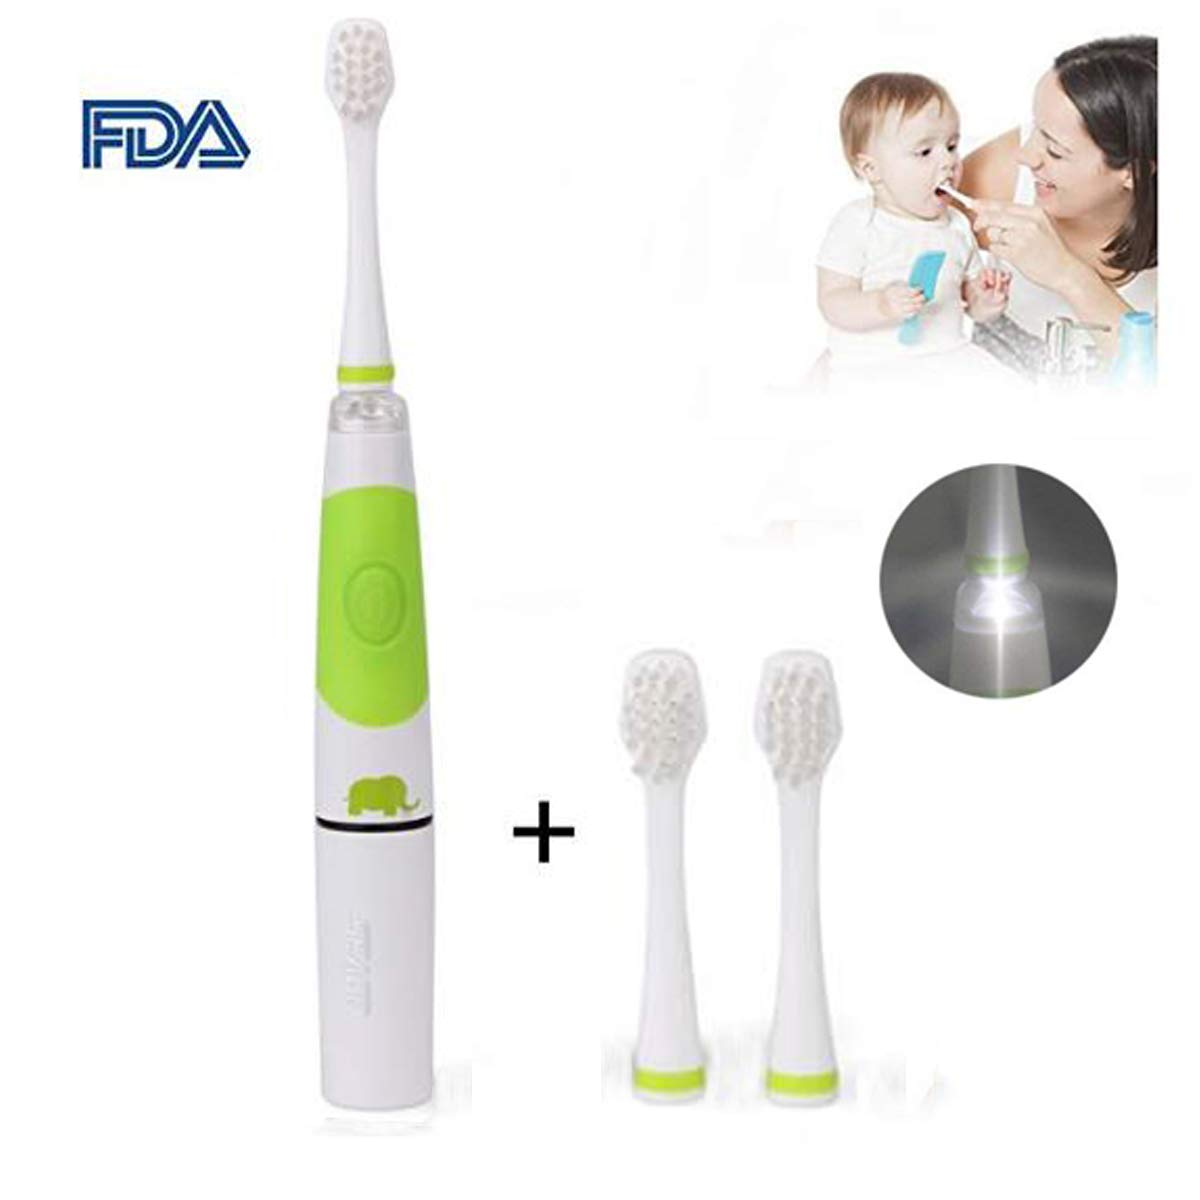 Kids Sonic Electric Toothbrush Smart Toothbrush with LED Lights 2 Replacement Brush Heads for 2 5 Years Baby Toddler Children